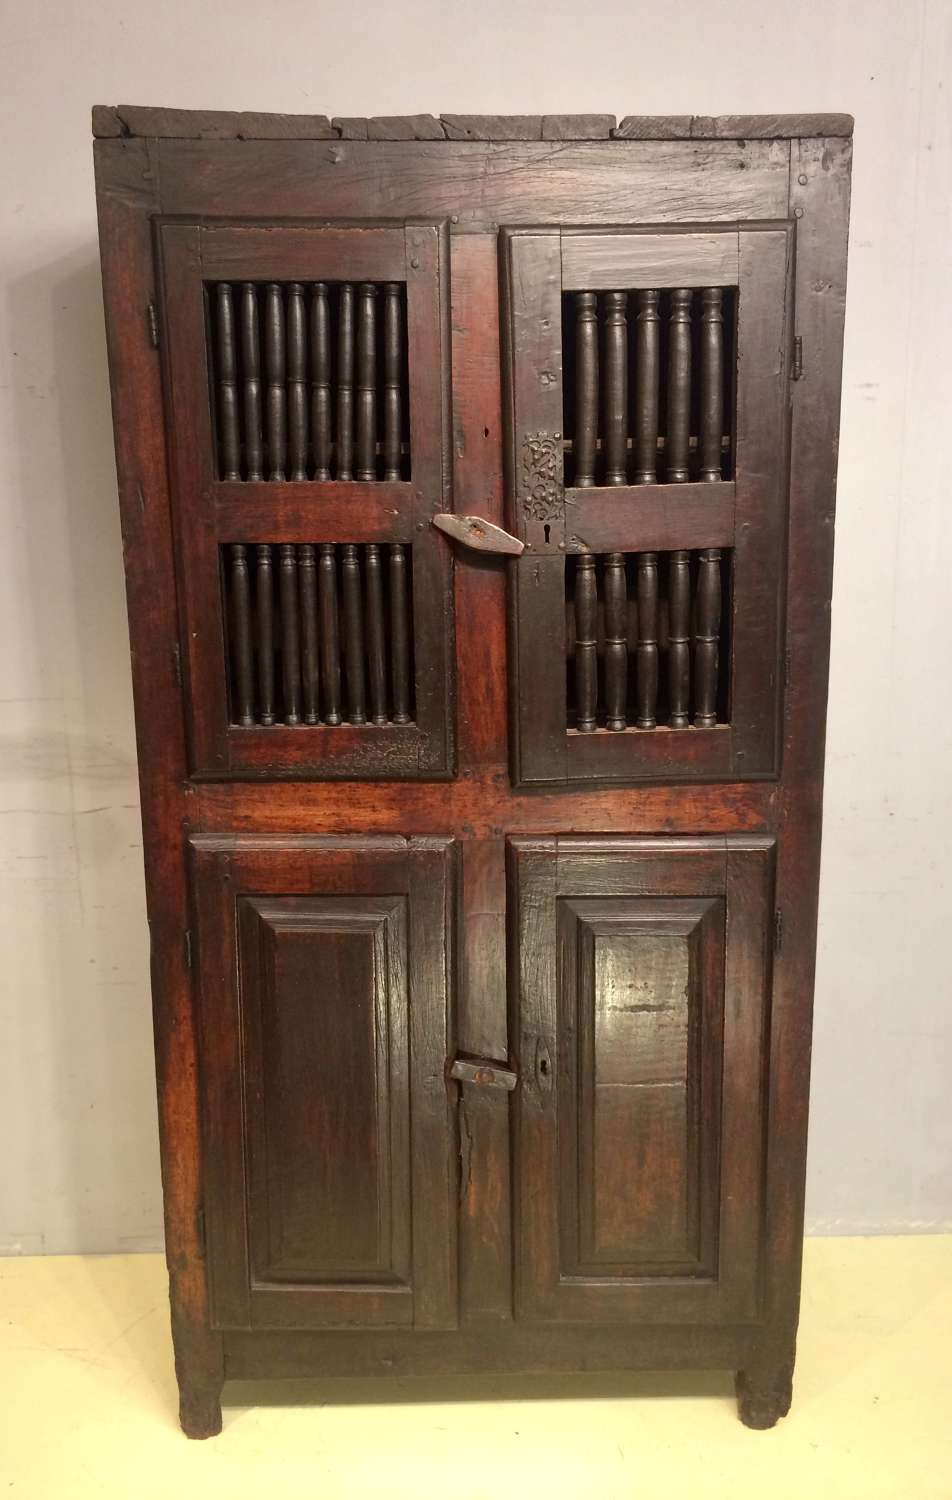 18th century French walnut food cupboard.